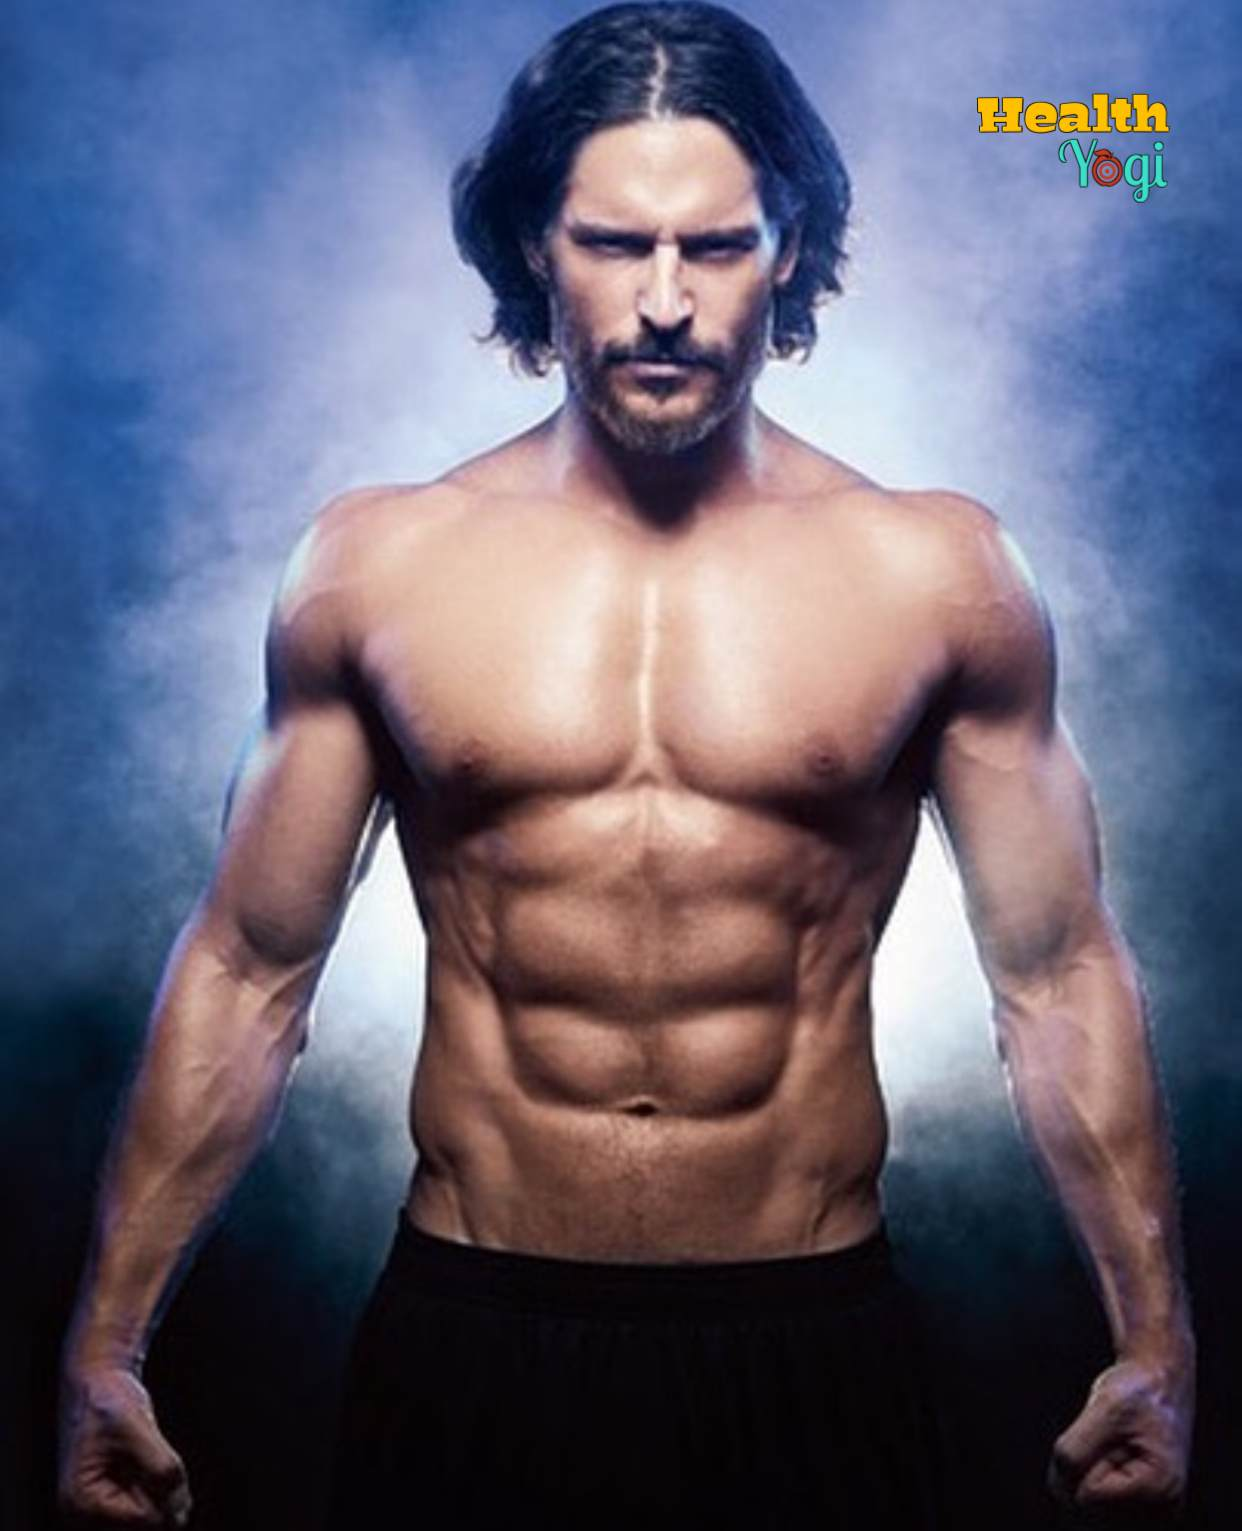 Joe Manganiello Workout Routine and Diet Plan